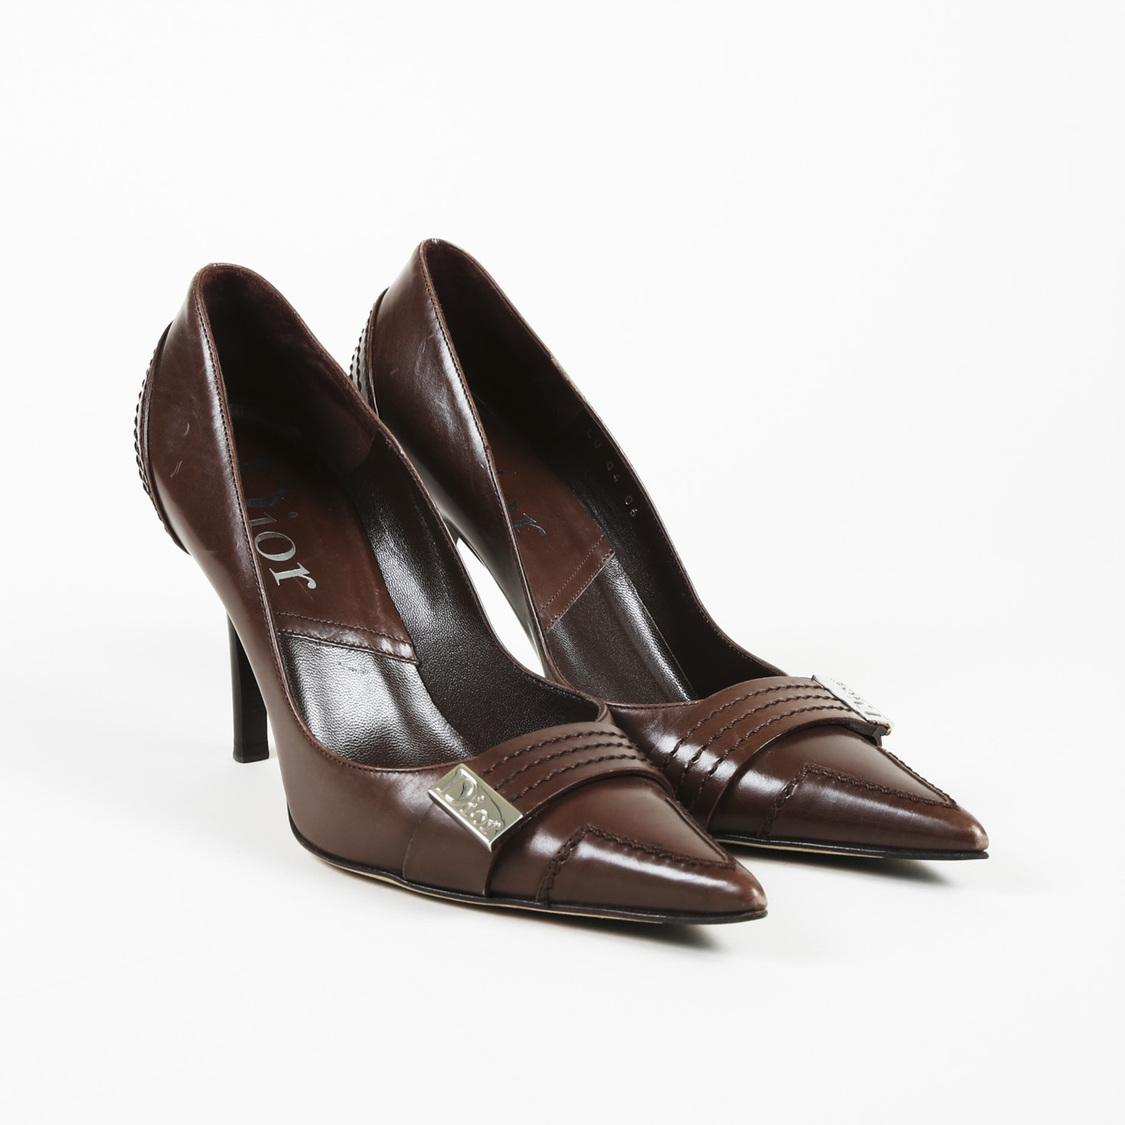 b4adf658c Dior. Women's Brown Dior Leather Pointed Court Shoes